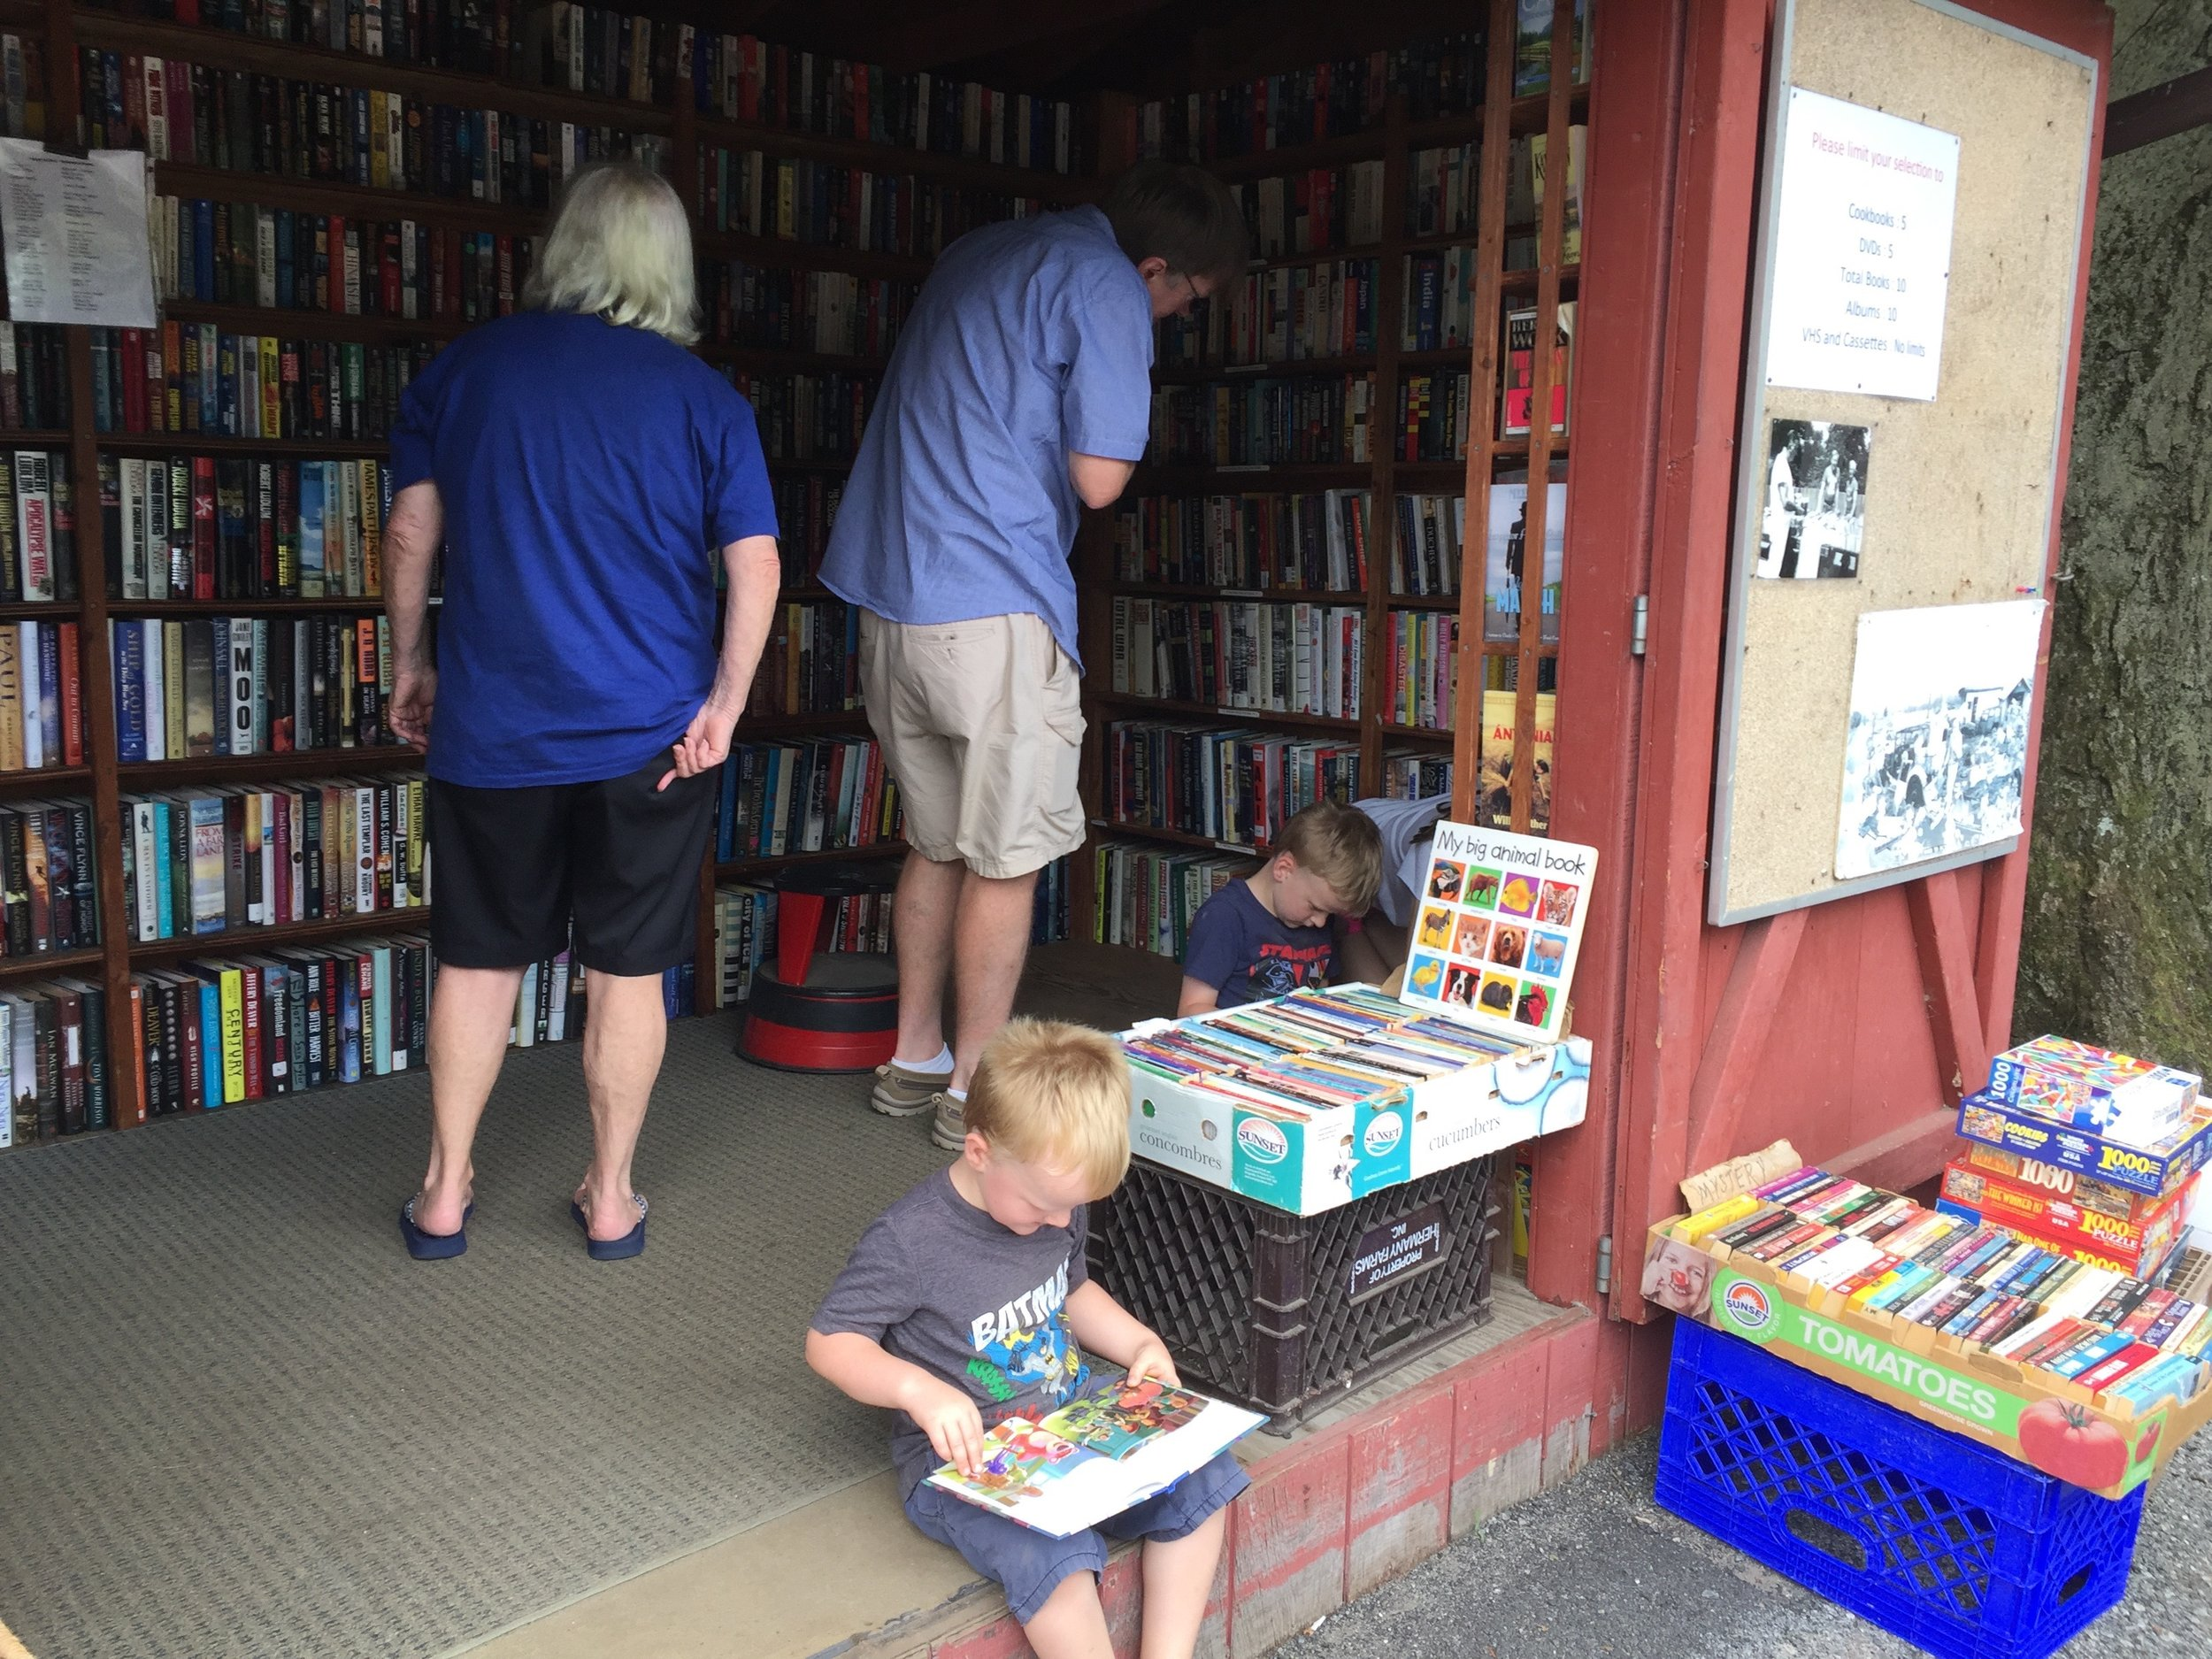 We love it when kids come by to find books